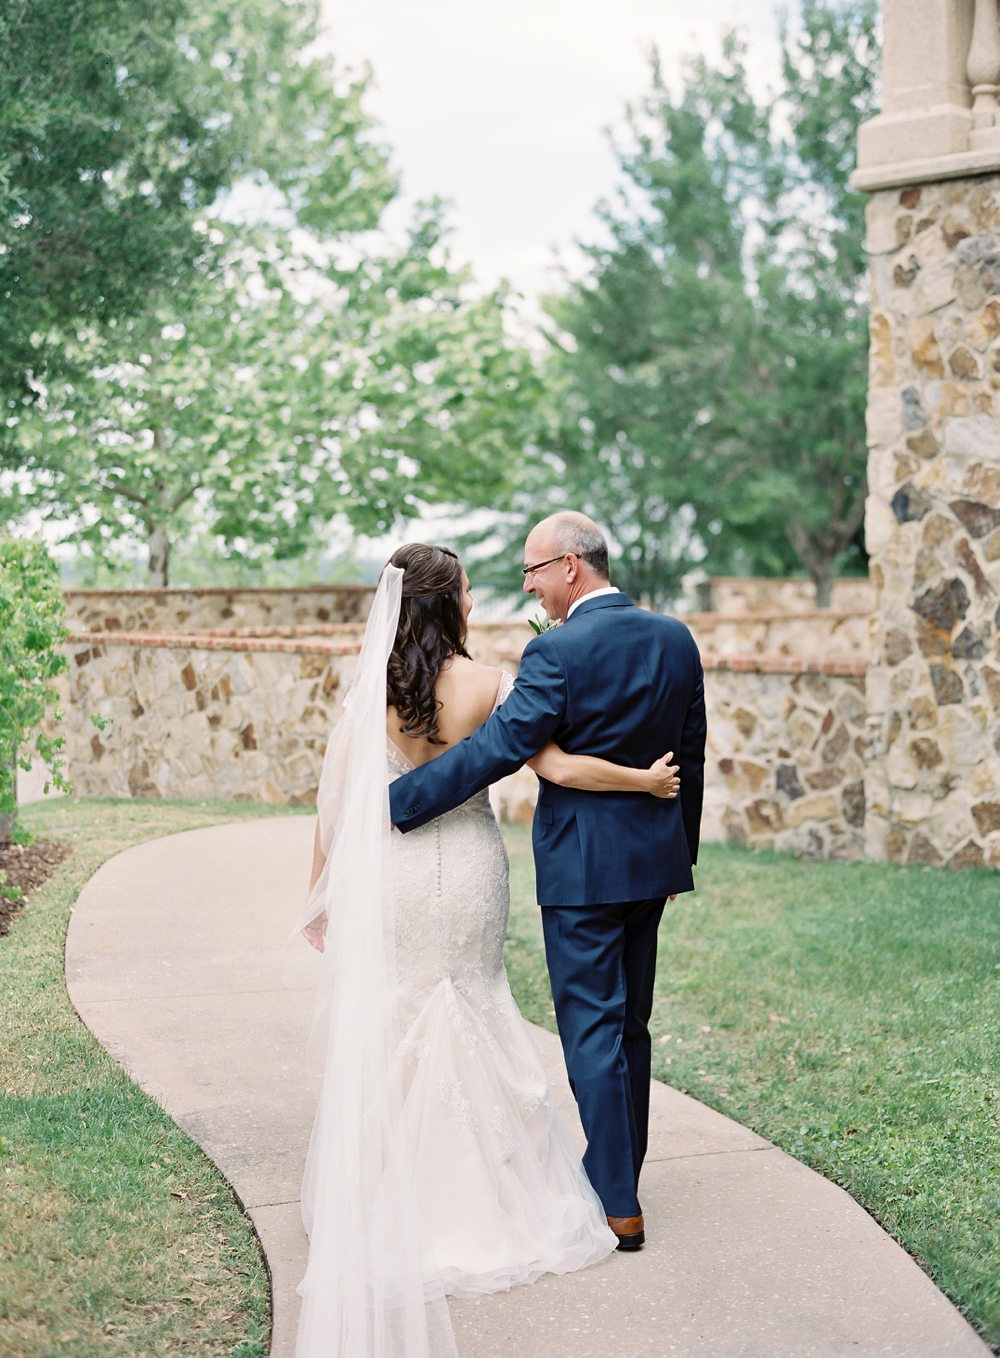 Vicki Grafton Photography - Fine Art Film Wedding Photographer - Bella Collina Wedding_0037.jpg